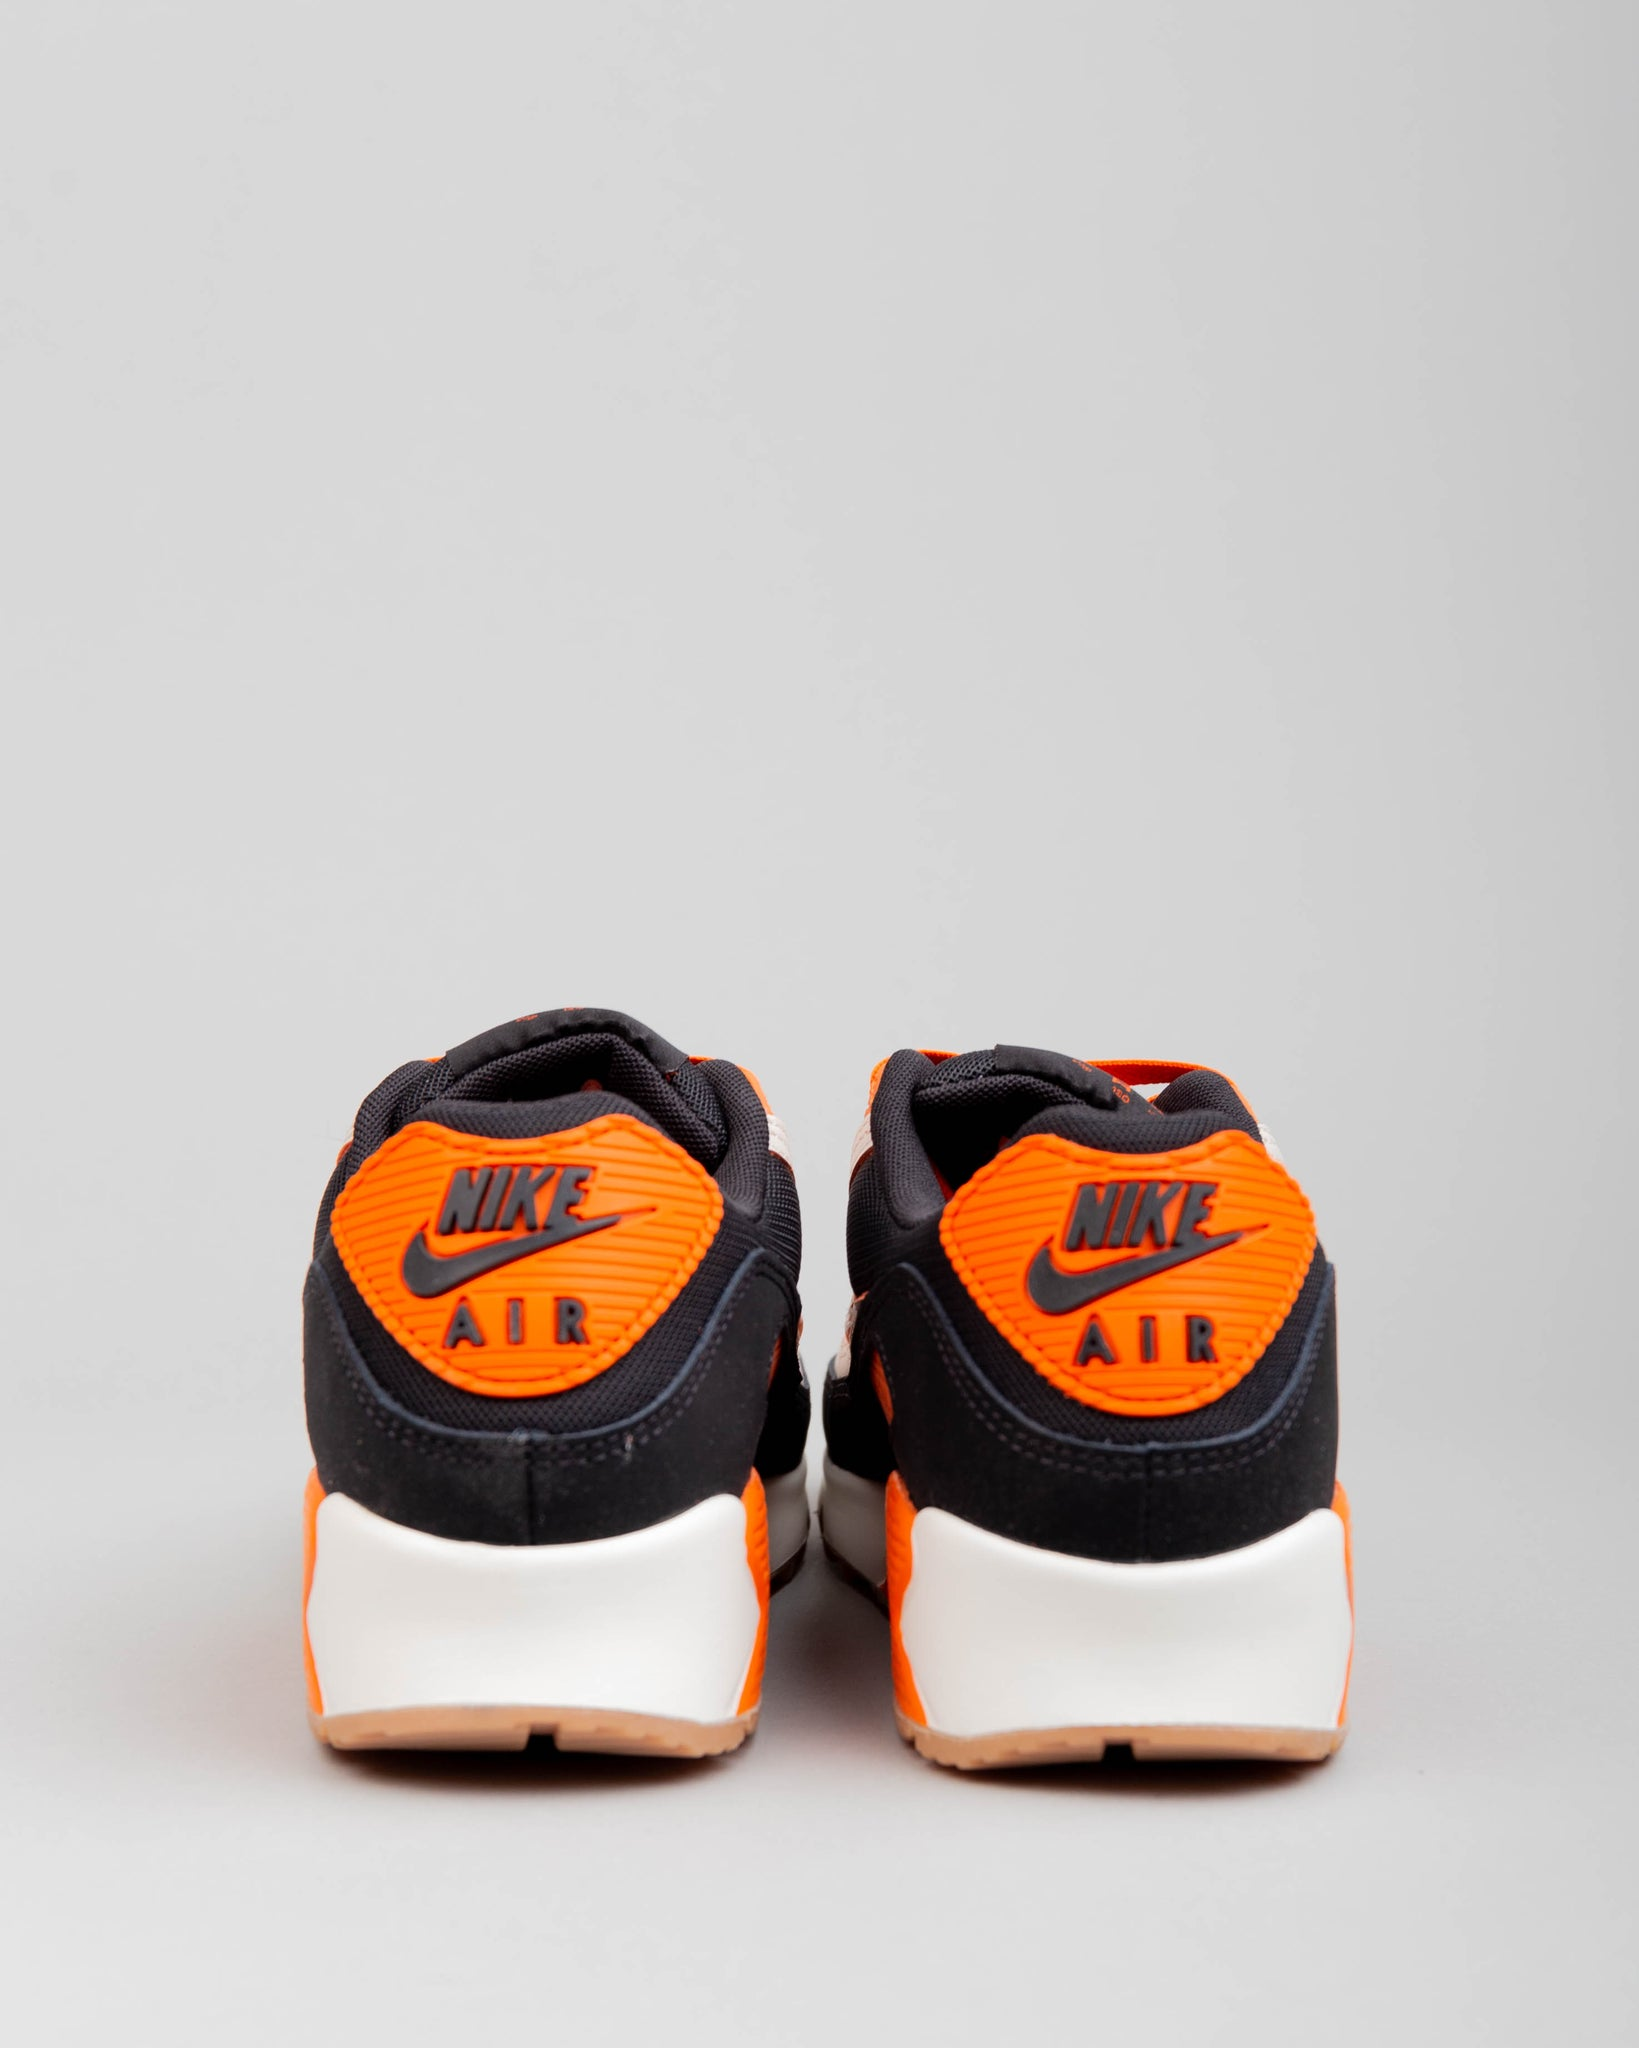 Air Max 90 Premium Sail/Safety Orange/Black